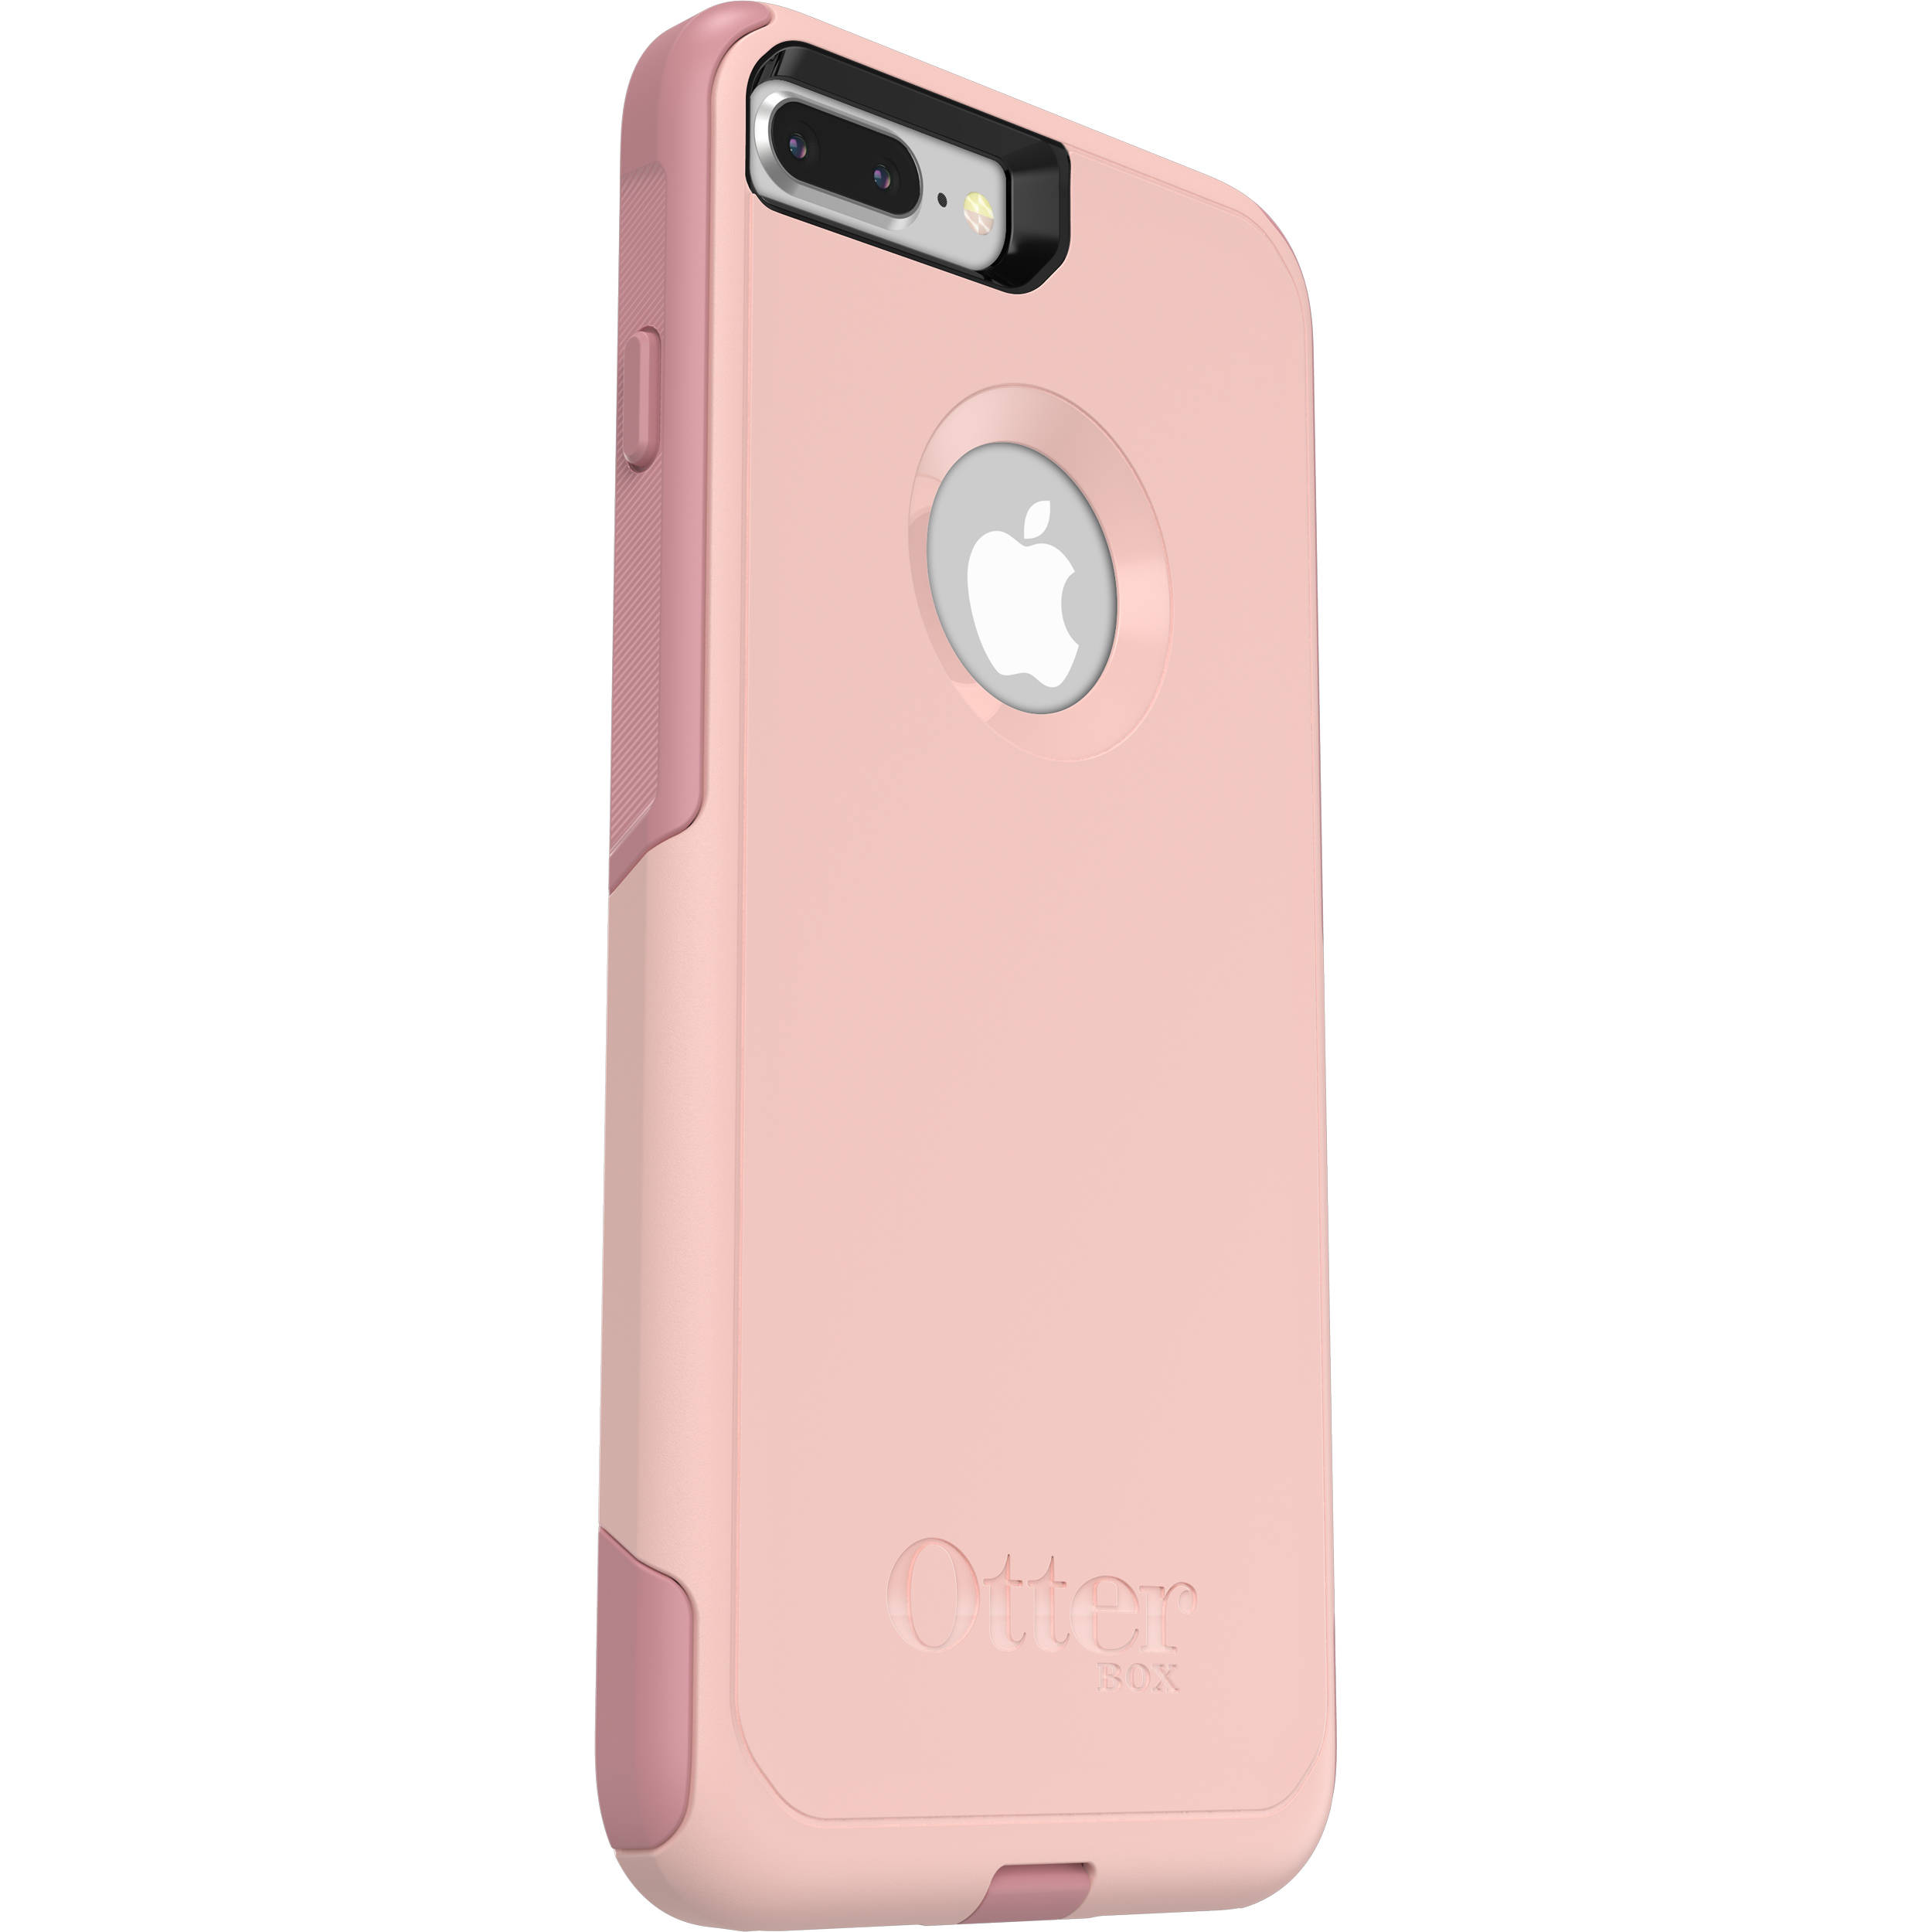 competitive price 231f6 5abc9 OtterBox Commuter Case for iPhone 7 Plus/8 Plus (Ballet Way)